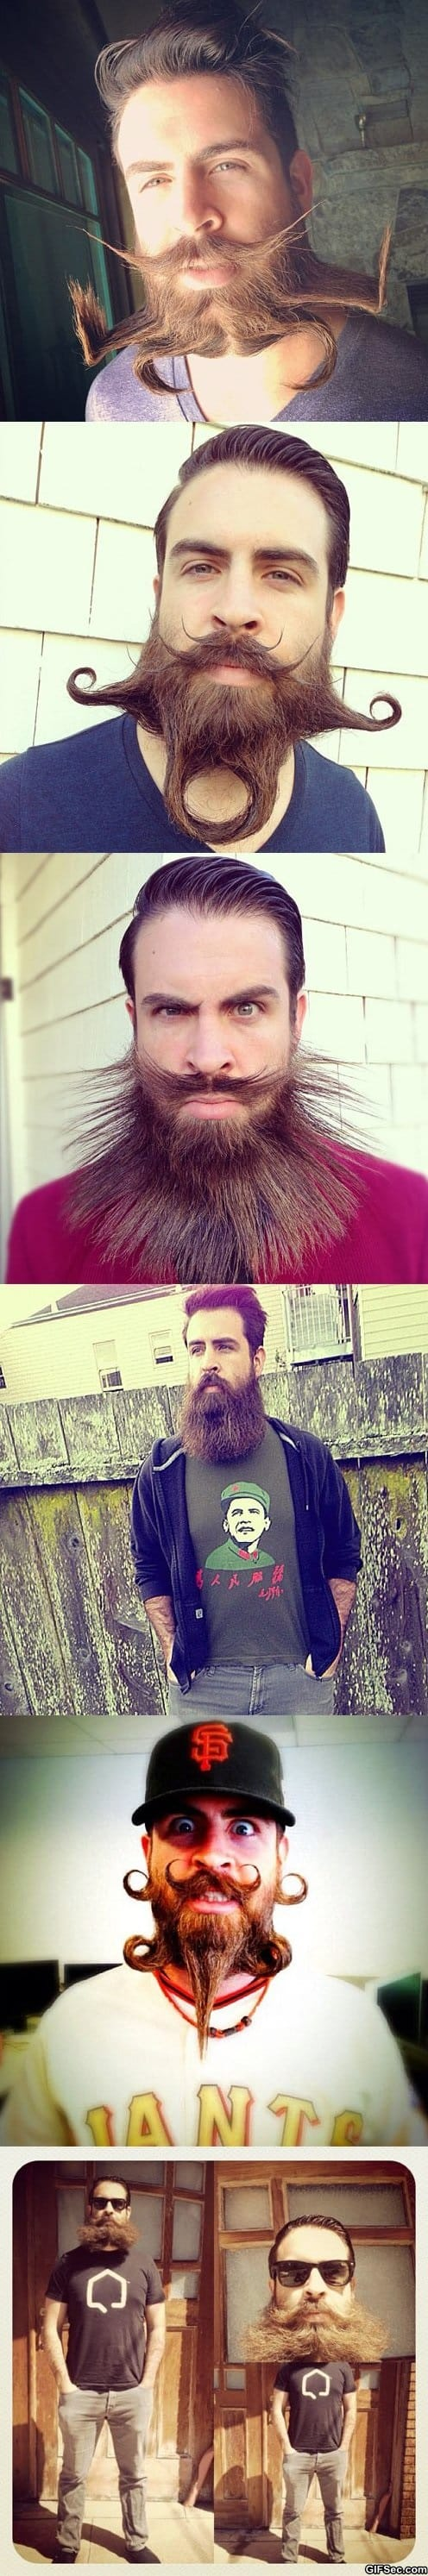 funny-pictures-awesome-beard